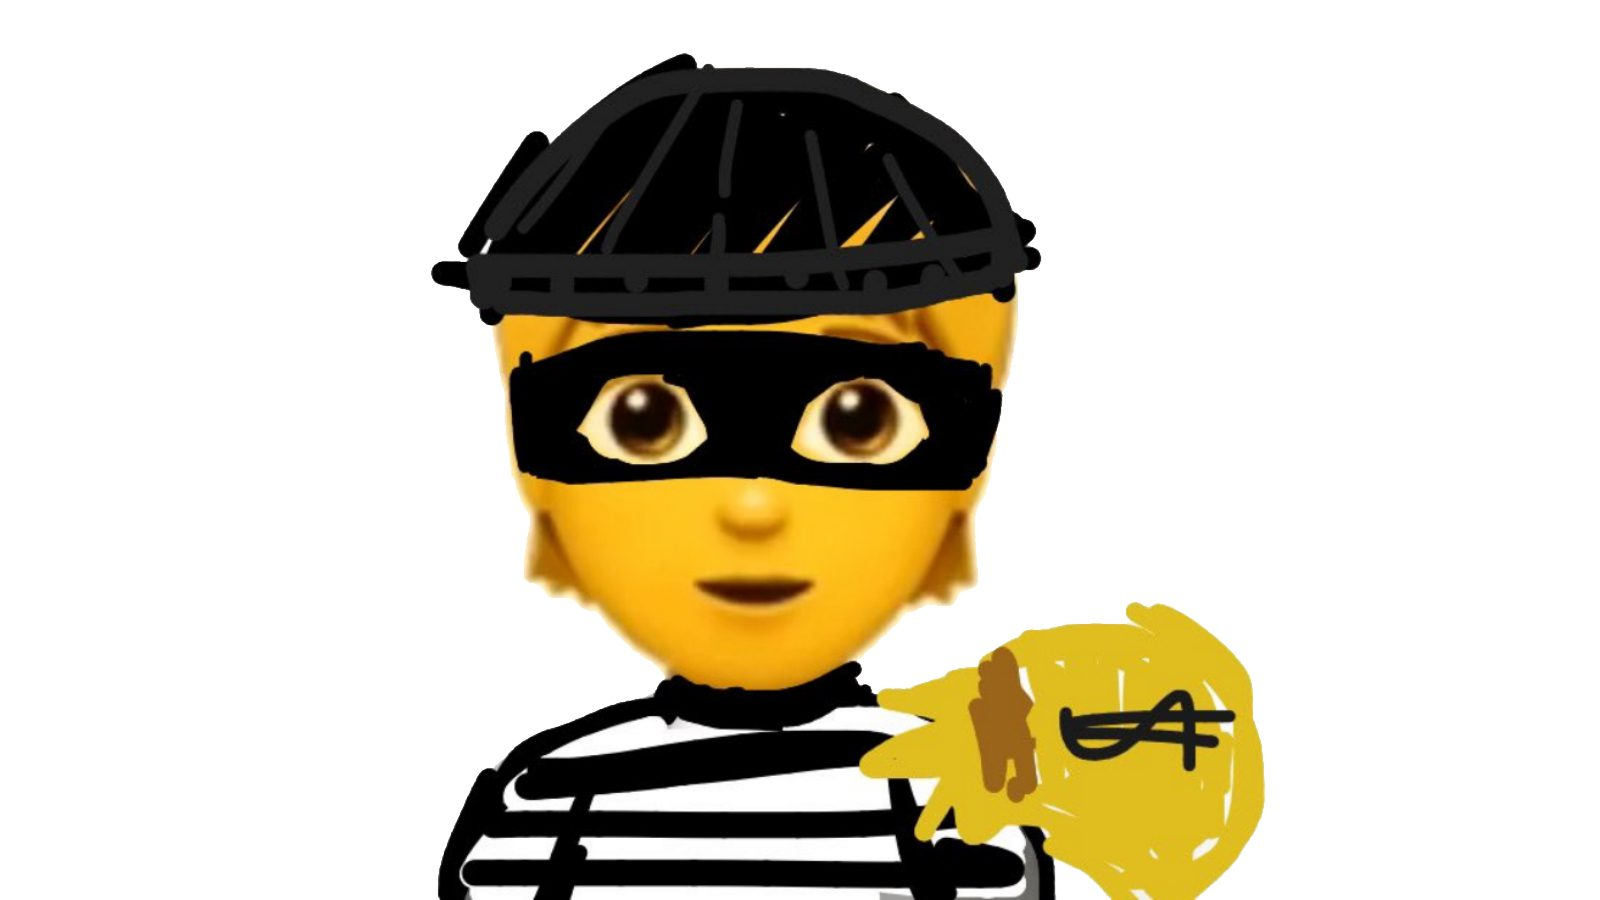 what happened to the robber emoji?